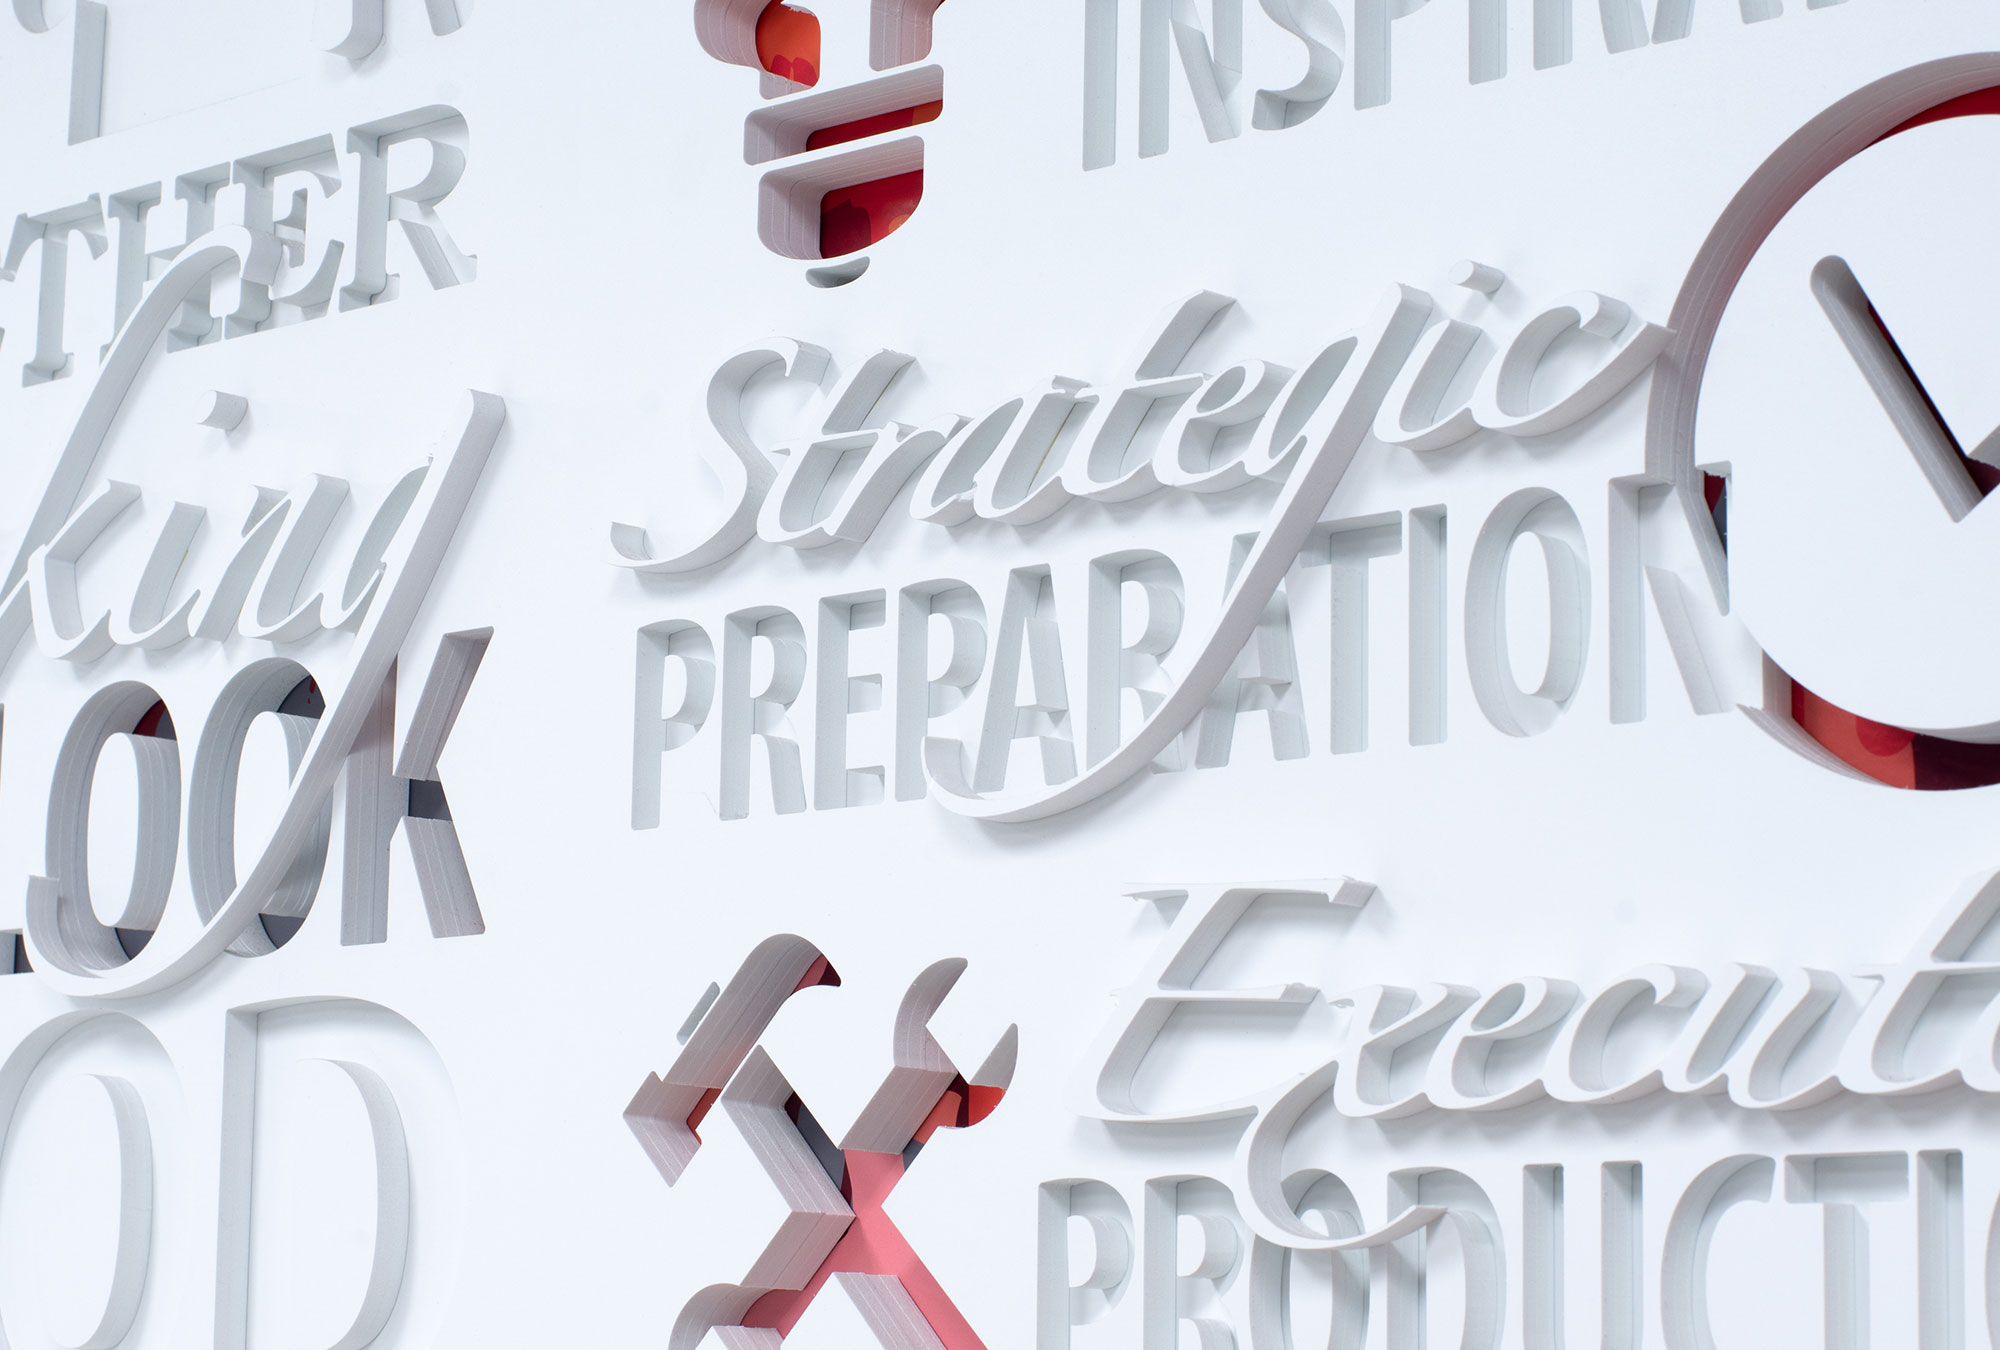 Display wall with 3D Lettering and intricate graphics